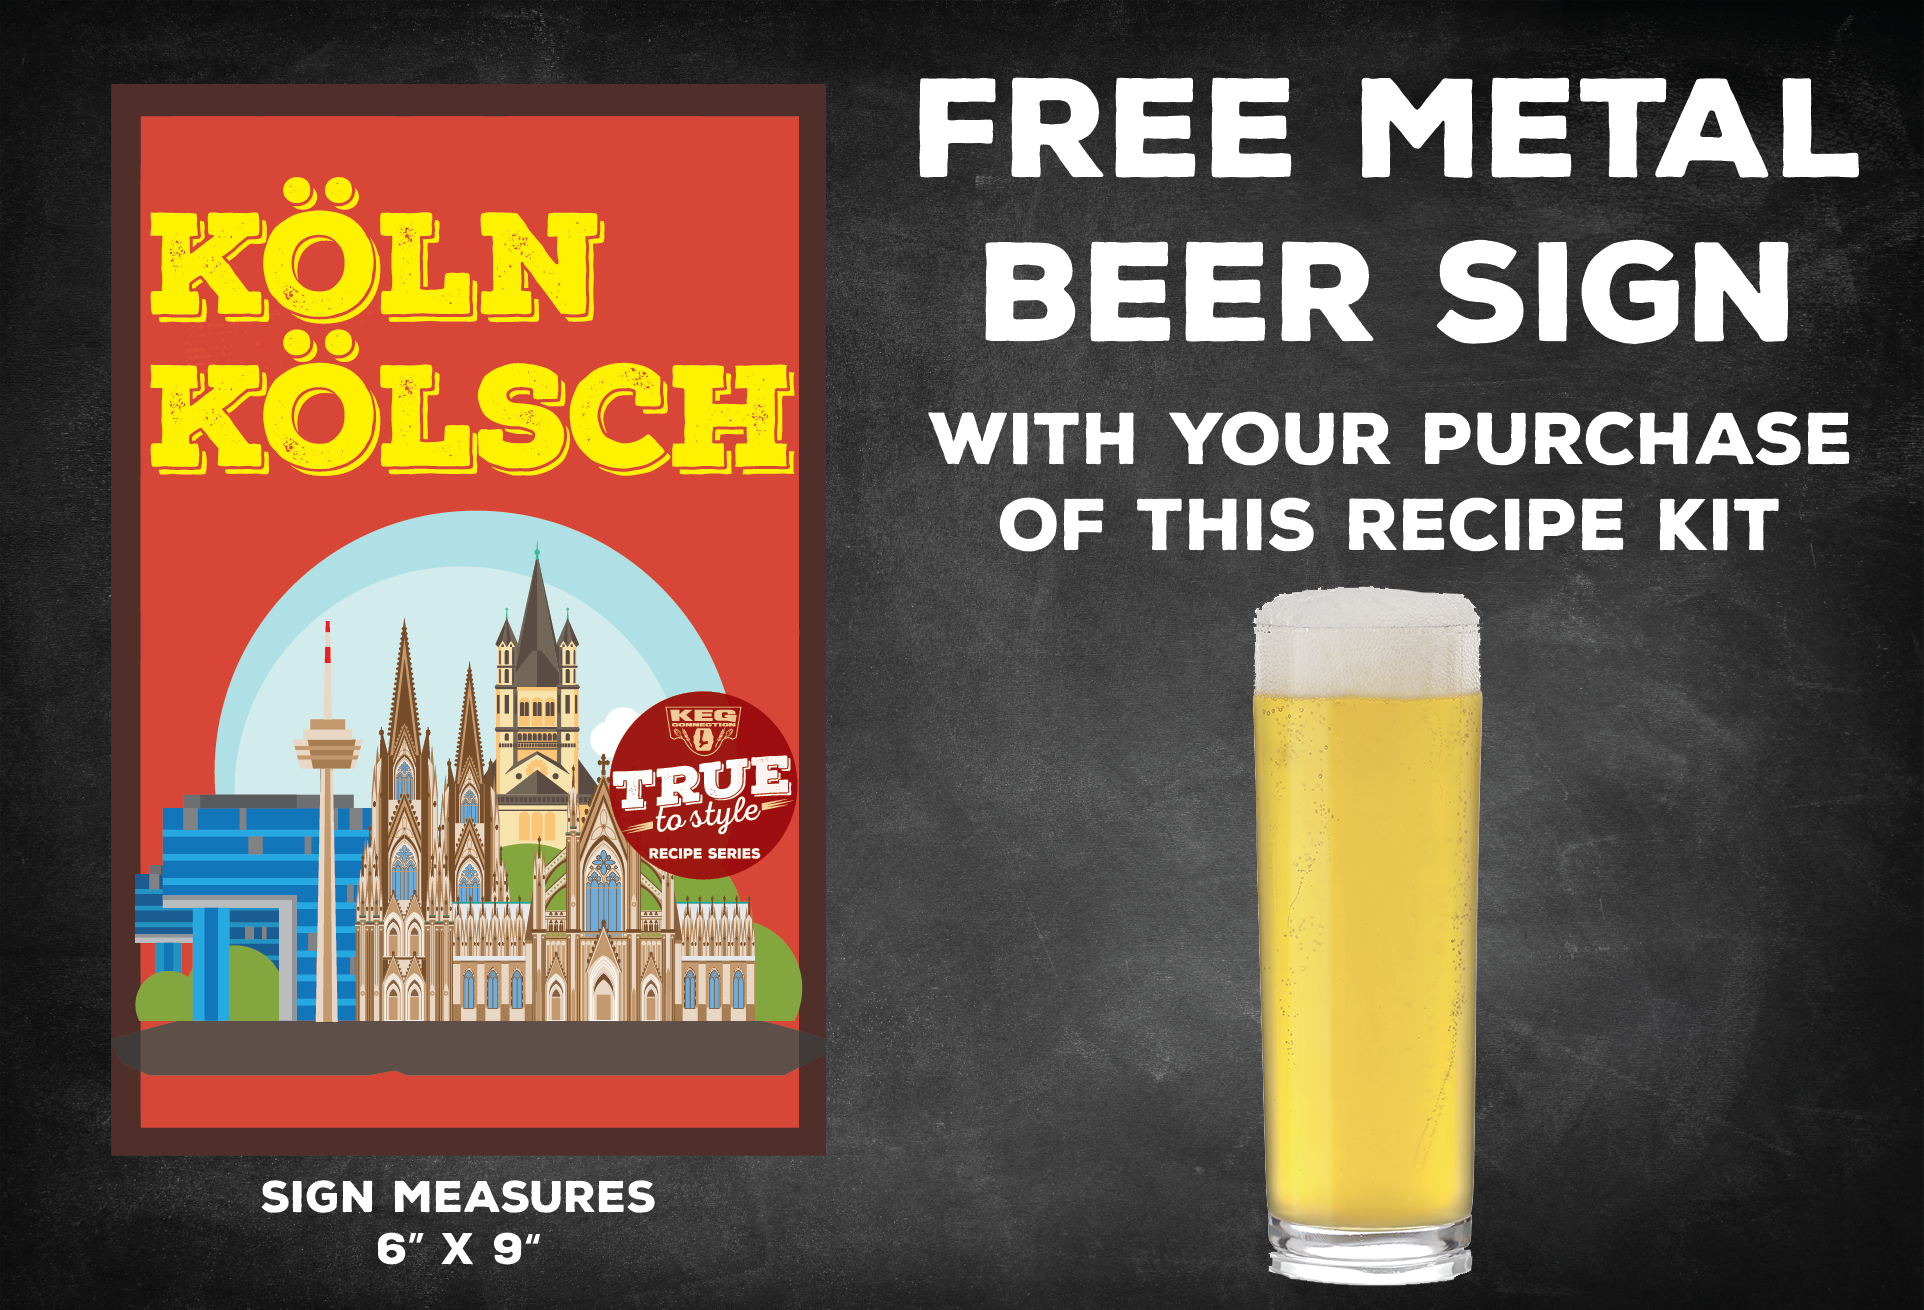 free-metal-sign-kolsch.png